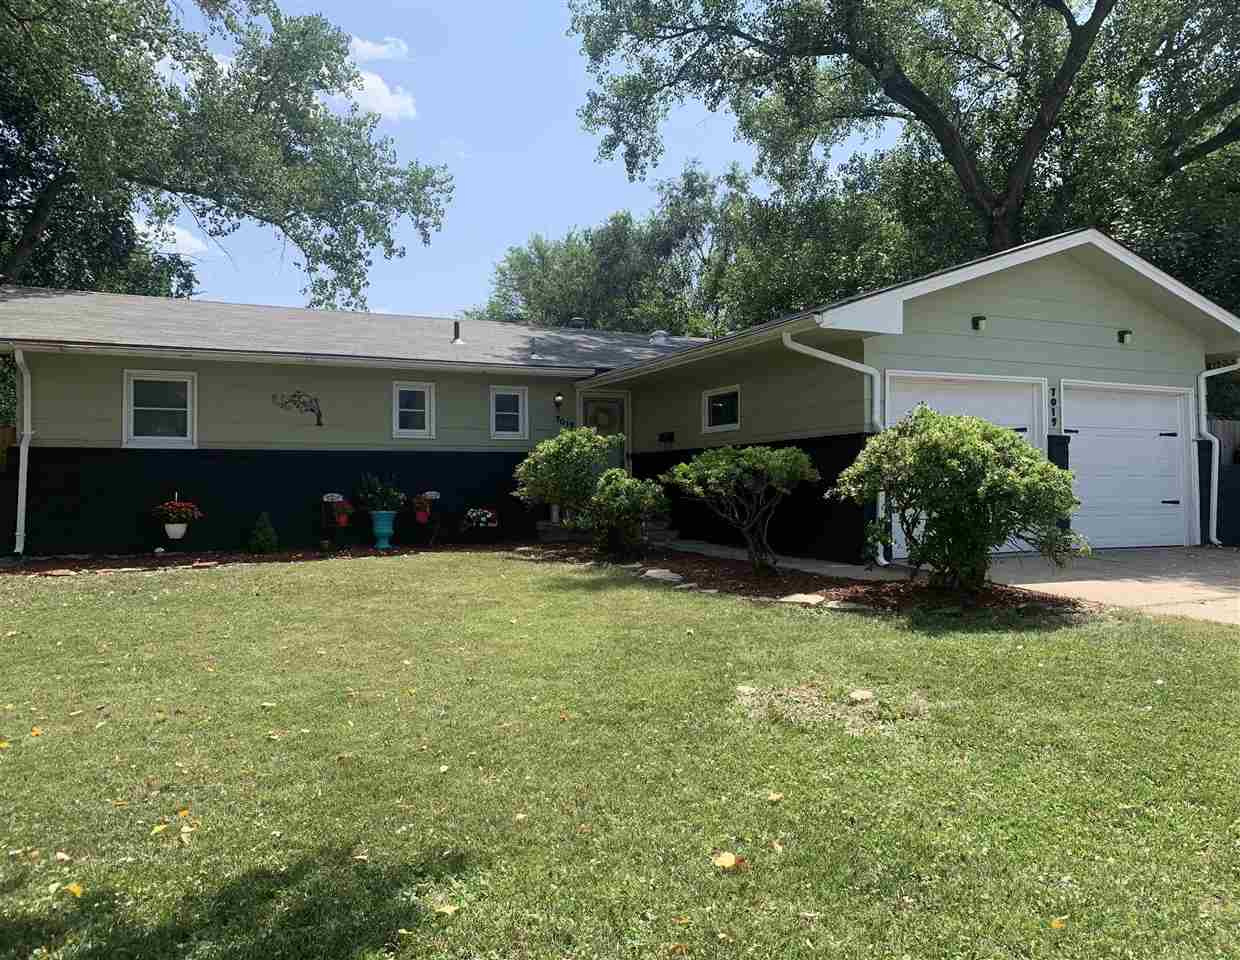 Welcome home to this cozy southeast Wichita home.  This freshly updated, turn-key ready, 3 bedroom,